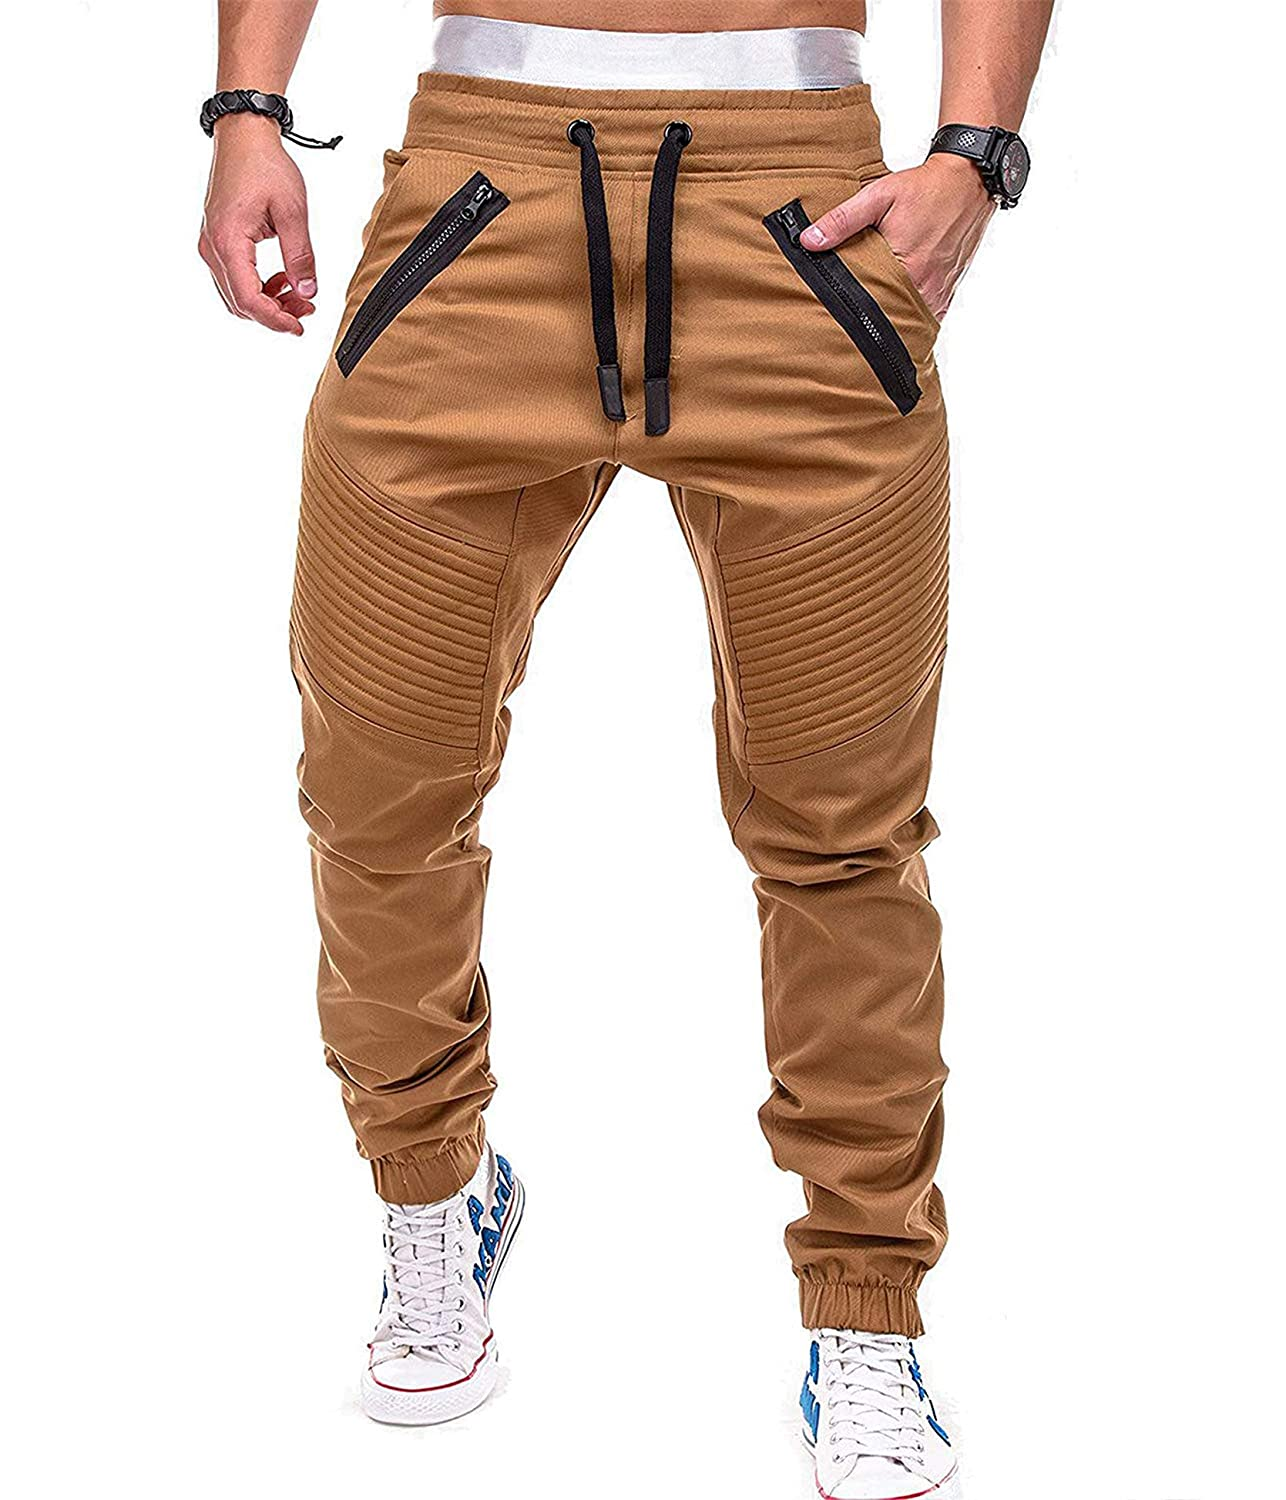 Mens Gym Jogger Pants Free shipping / New Training fit Slim Causa security Sweatpants Workout